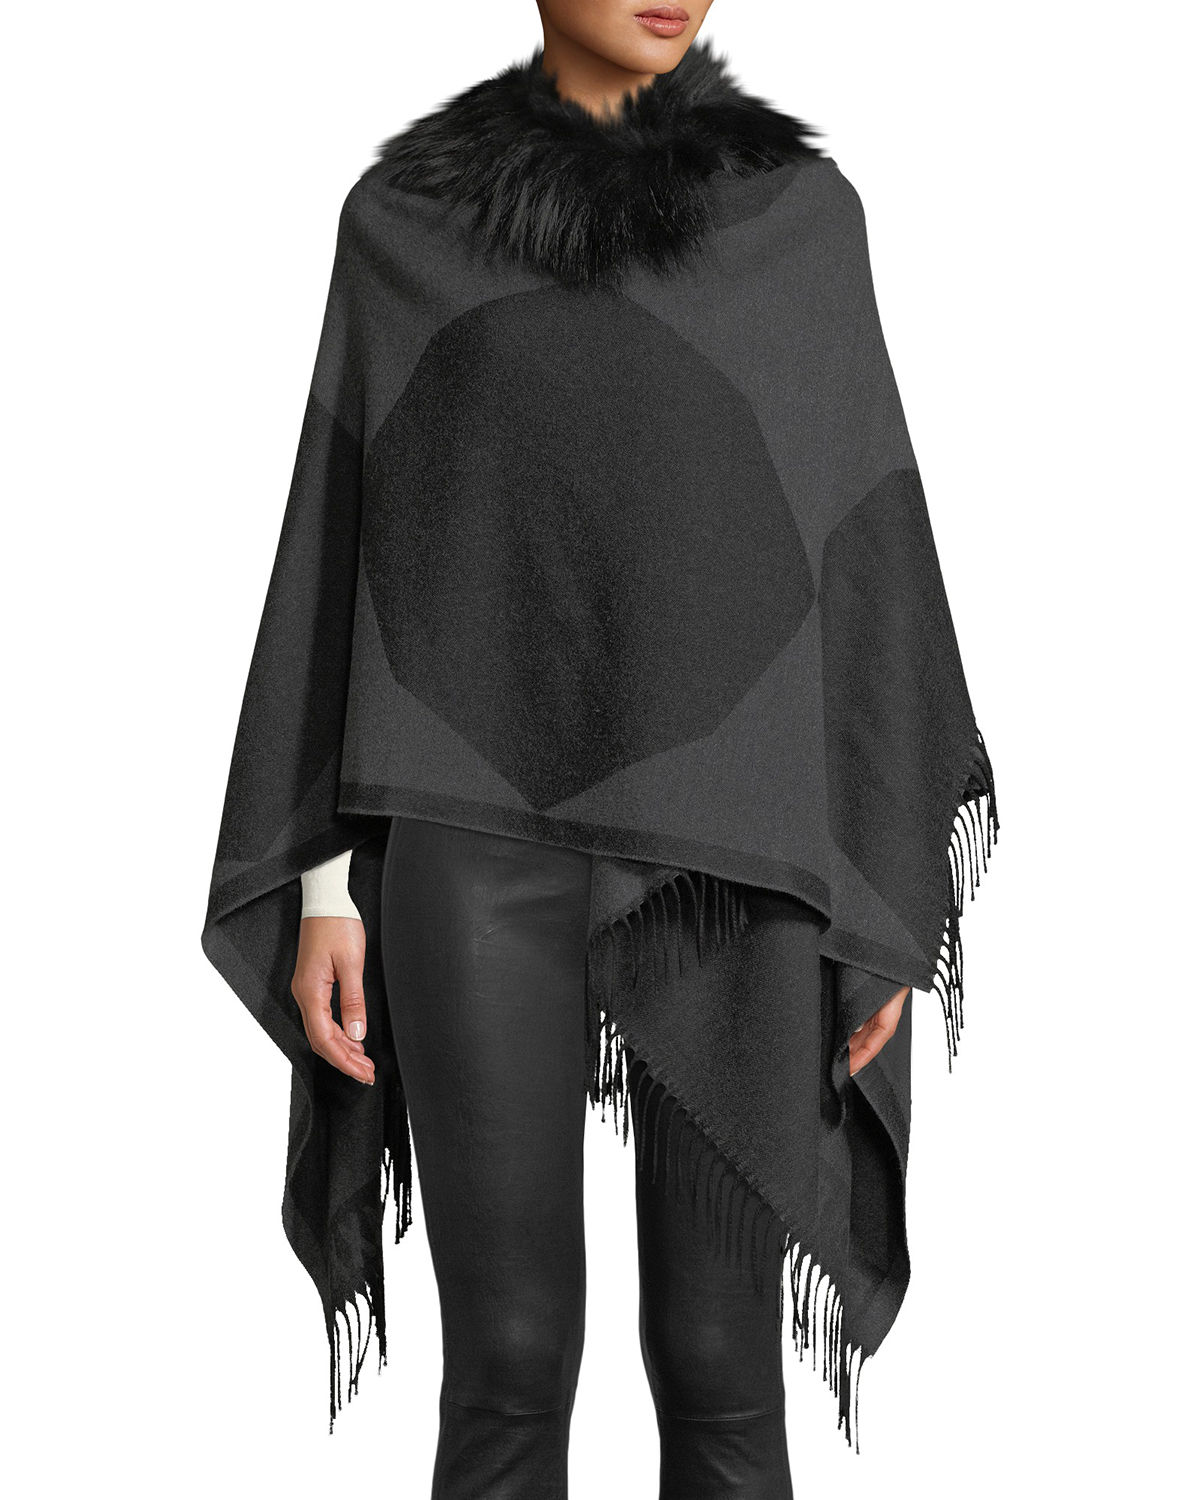 Fendi Coats COLORBLOCK WOOL PONCHO WITH FUR COLLAR